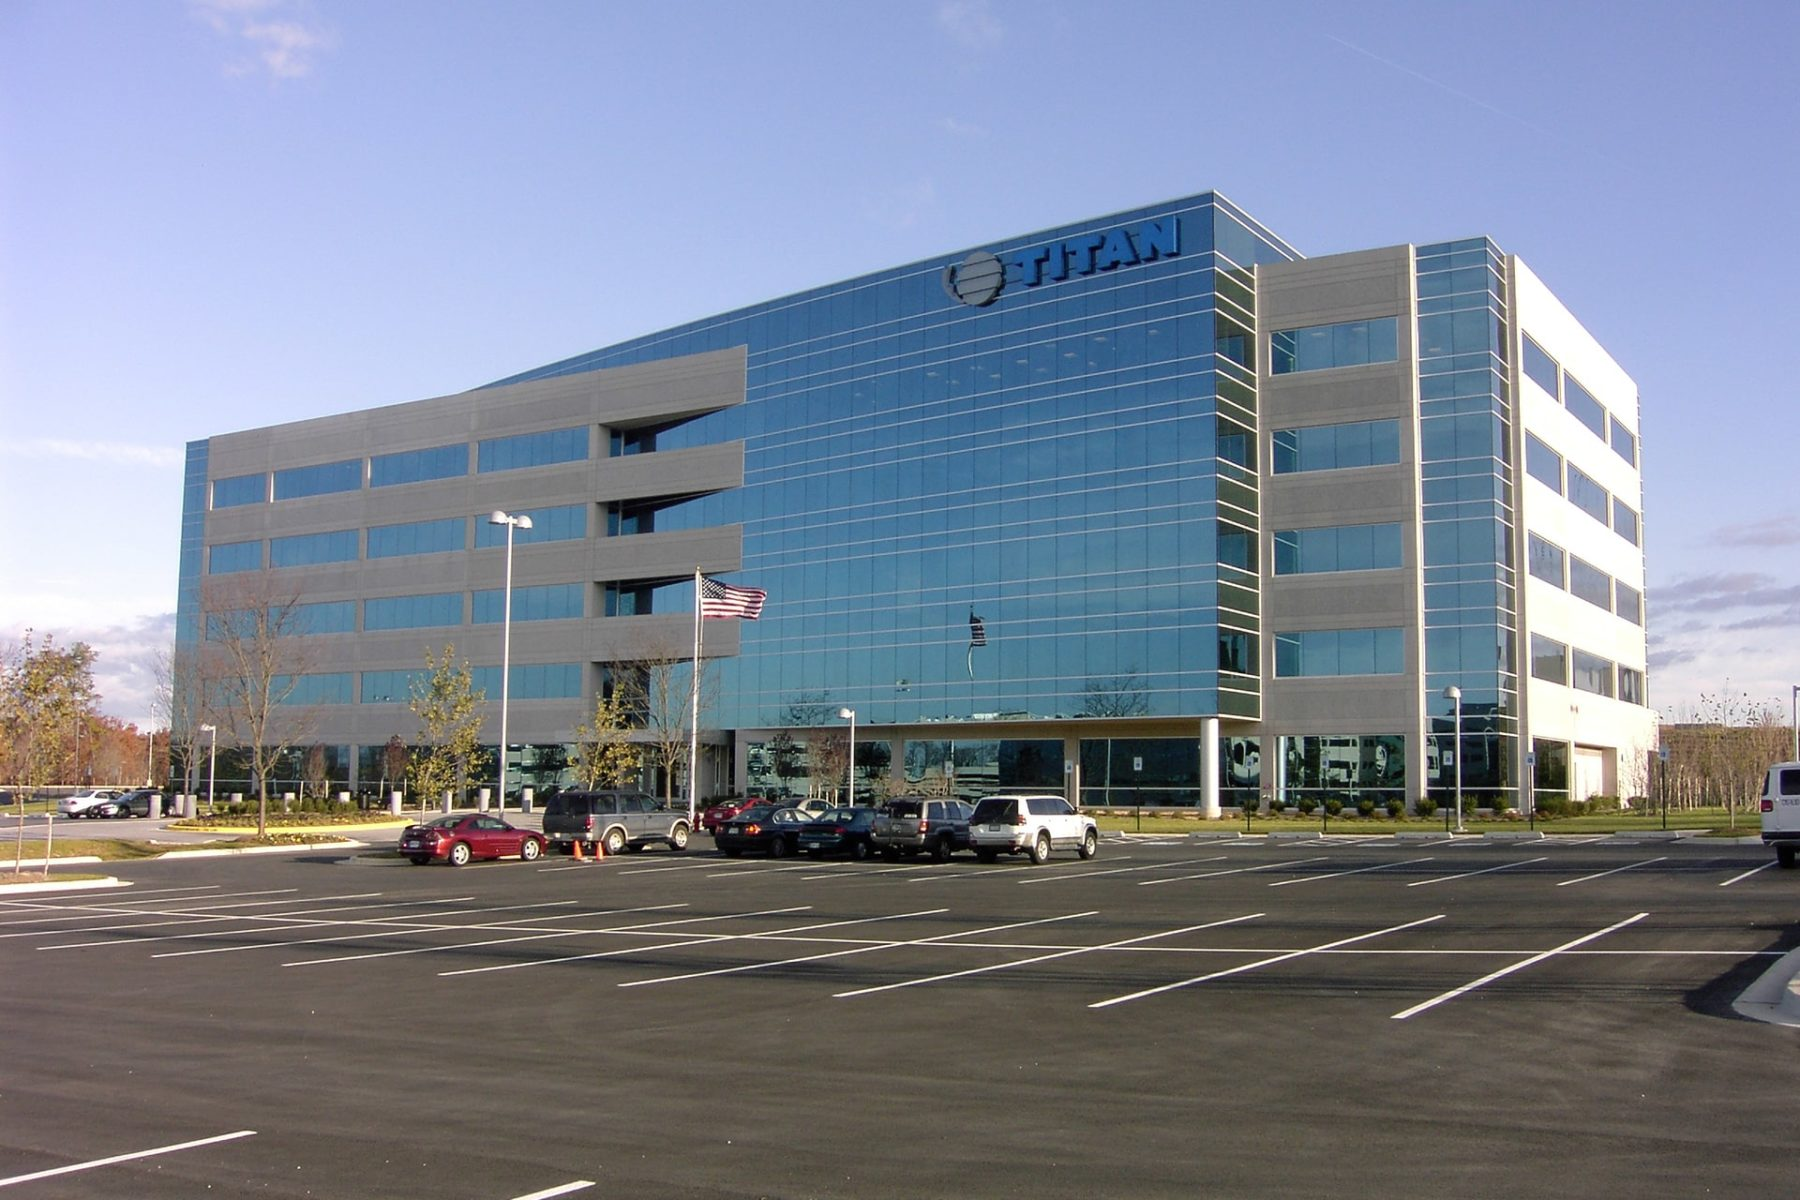 National Business Park Building 220, L3, The Titan Corporation